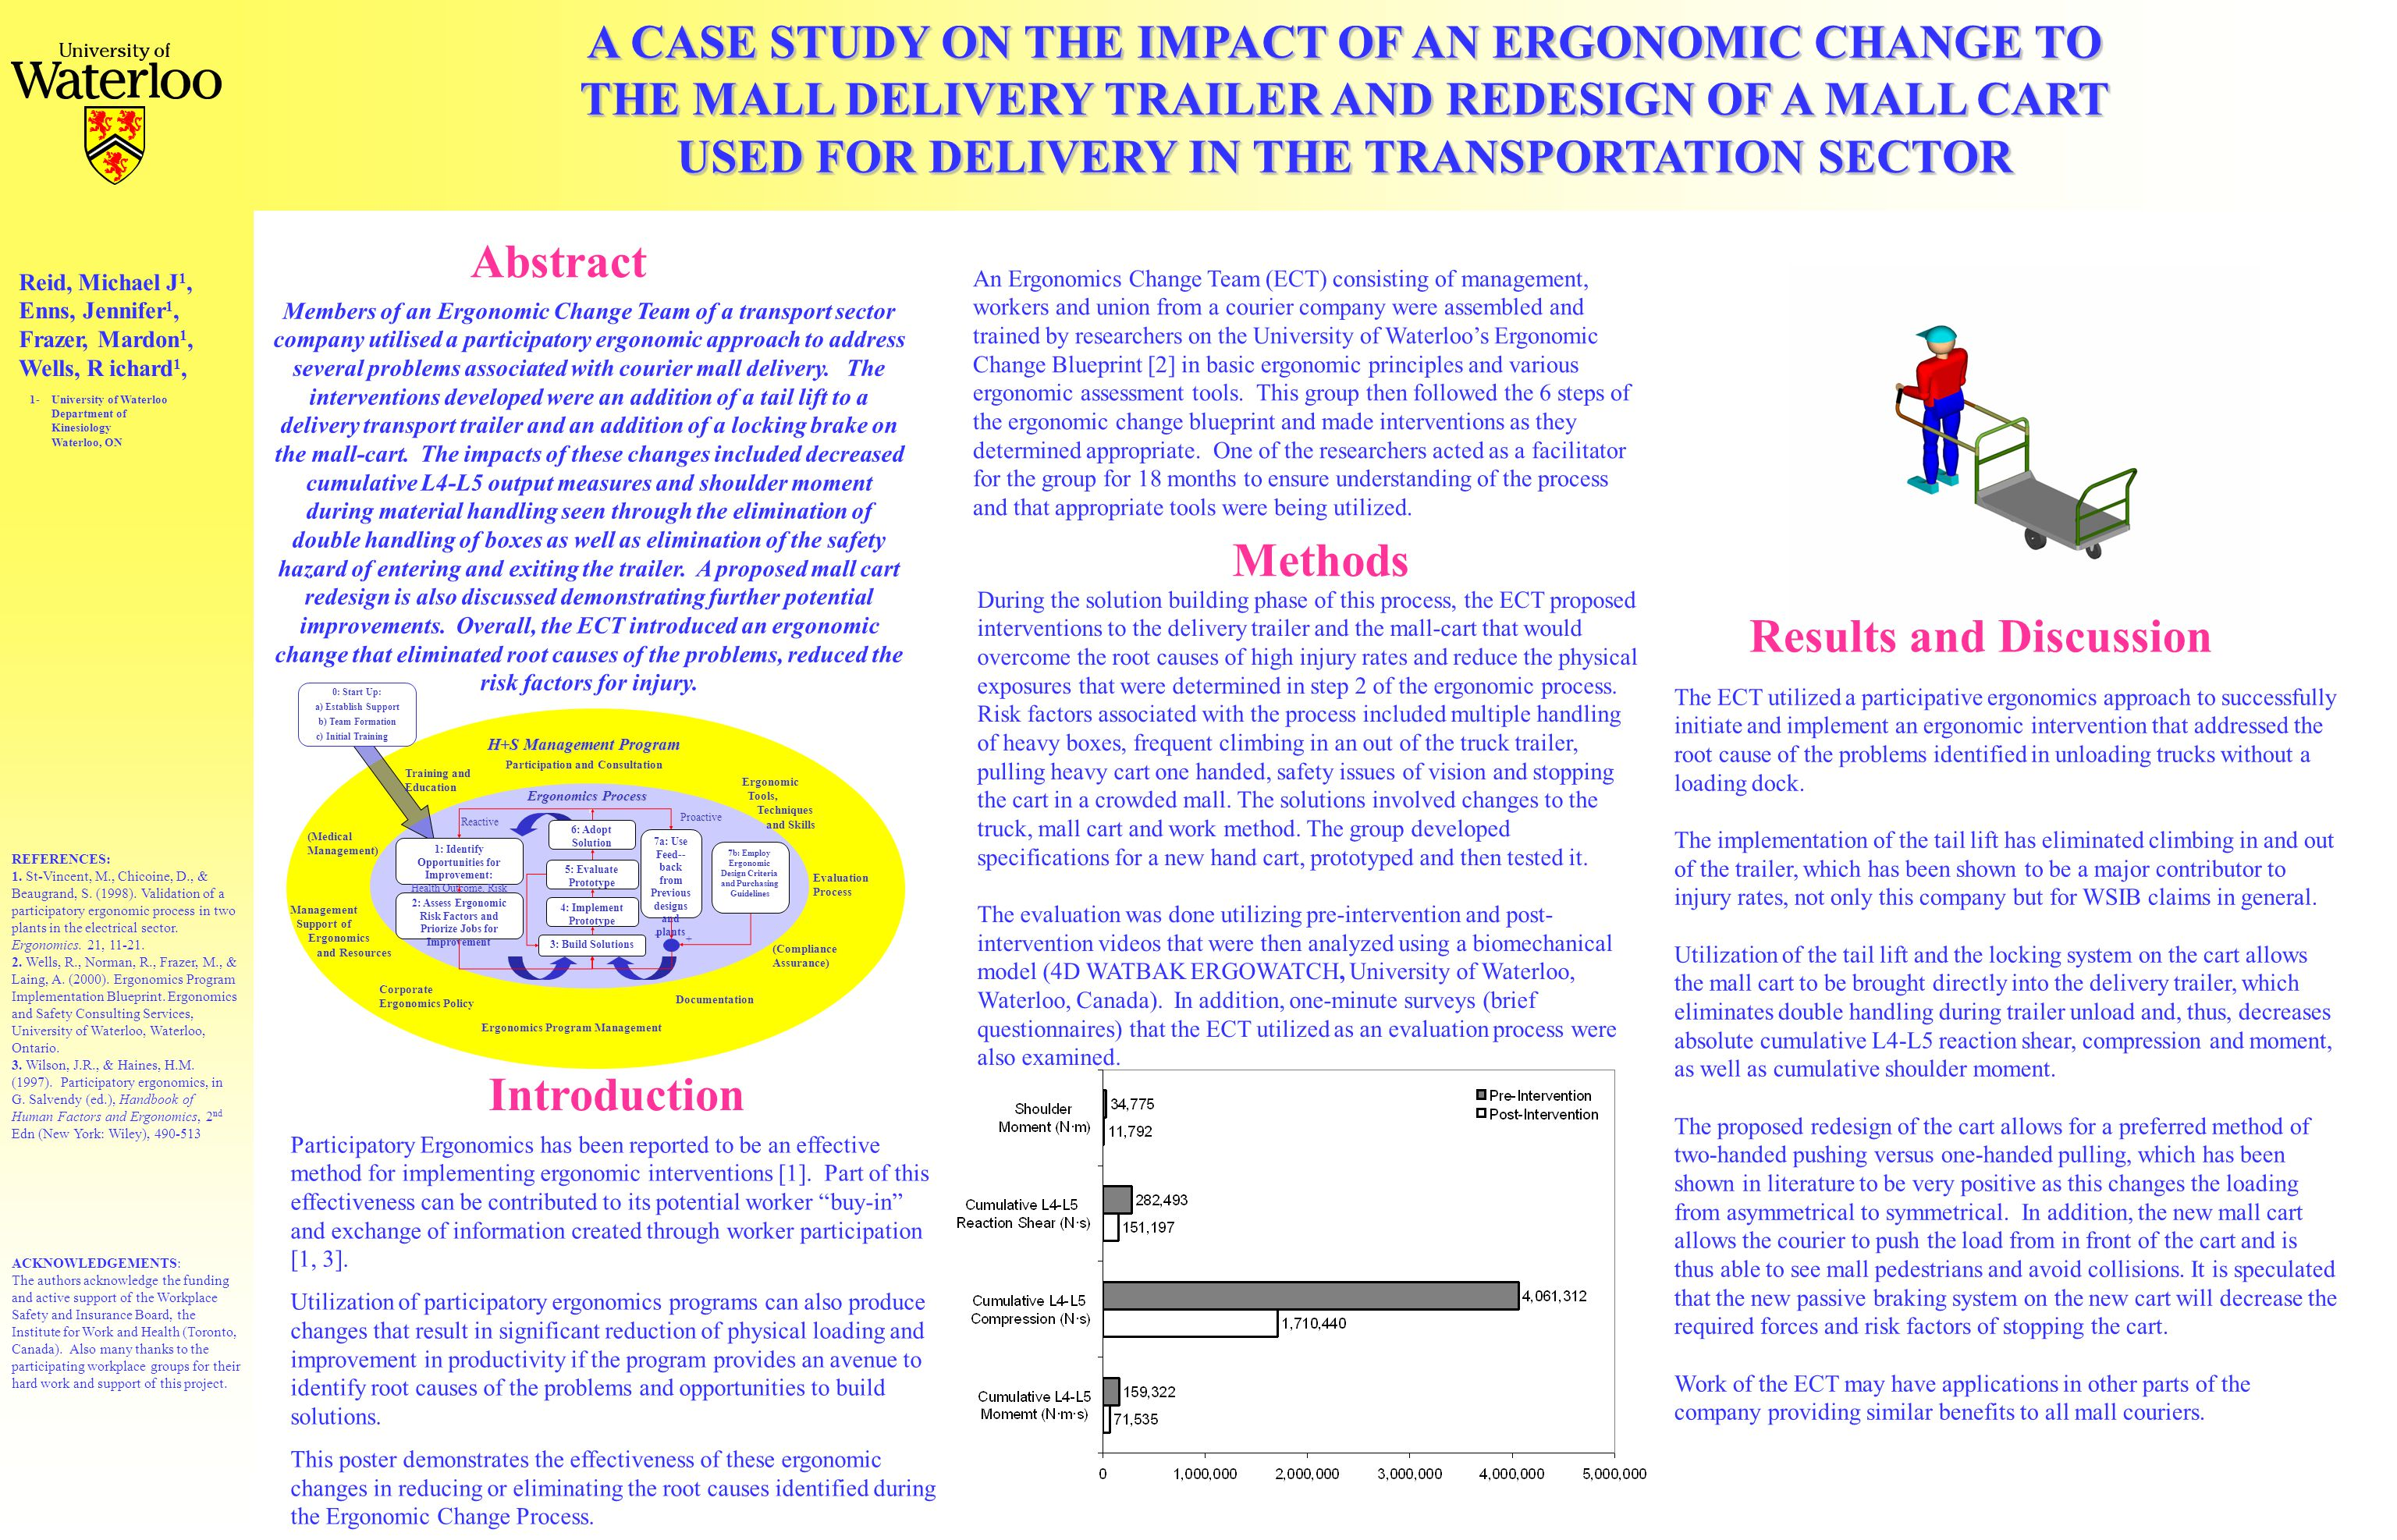 A CASE STUDY ON THE IMPACT OF AN ERGONOMIC CHANGE TO THE MALL DELIVERY TRAILER AND REDESIGN OF A MALL CART USED FOR DELIVERY IN THE TRANSPORTATION SECTOR Reid, Michael J 1, Enns, Jennifer 1, Frazer, Mardon 1, Wells, R ichard 1, 1-University of Waterloo Department of Kinesiology Waterloo, ON ACKNOWLEDGEMENTS: The authors acknowledge the funding and active support of the Workplace Safety and Insurance Board, the Institute for Work and Health (Toronto, Canada).